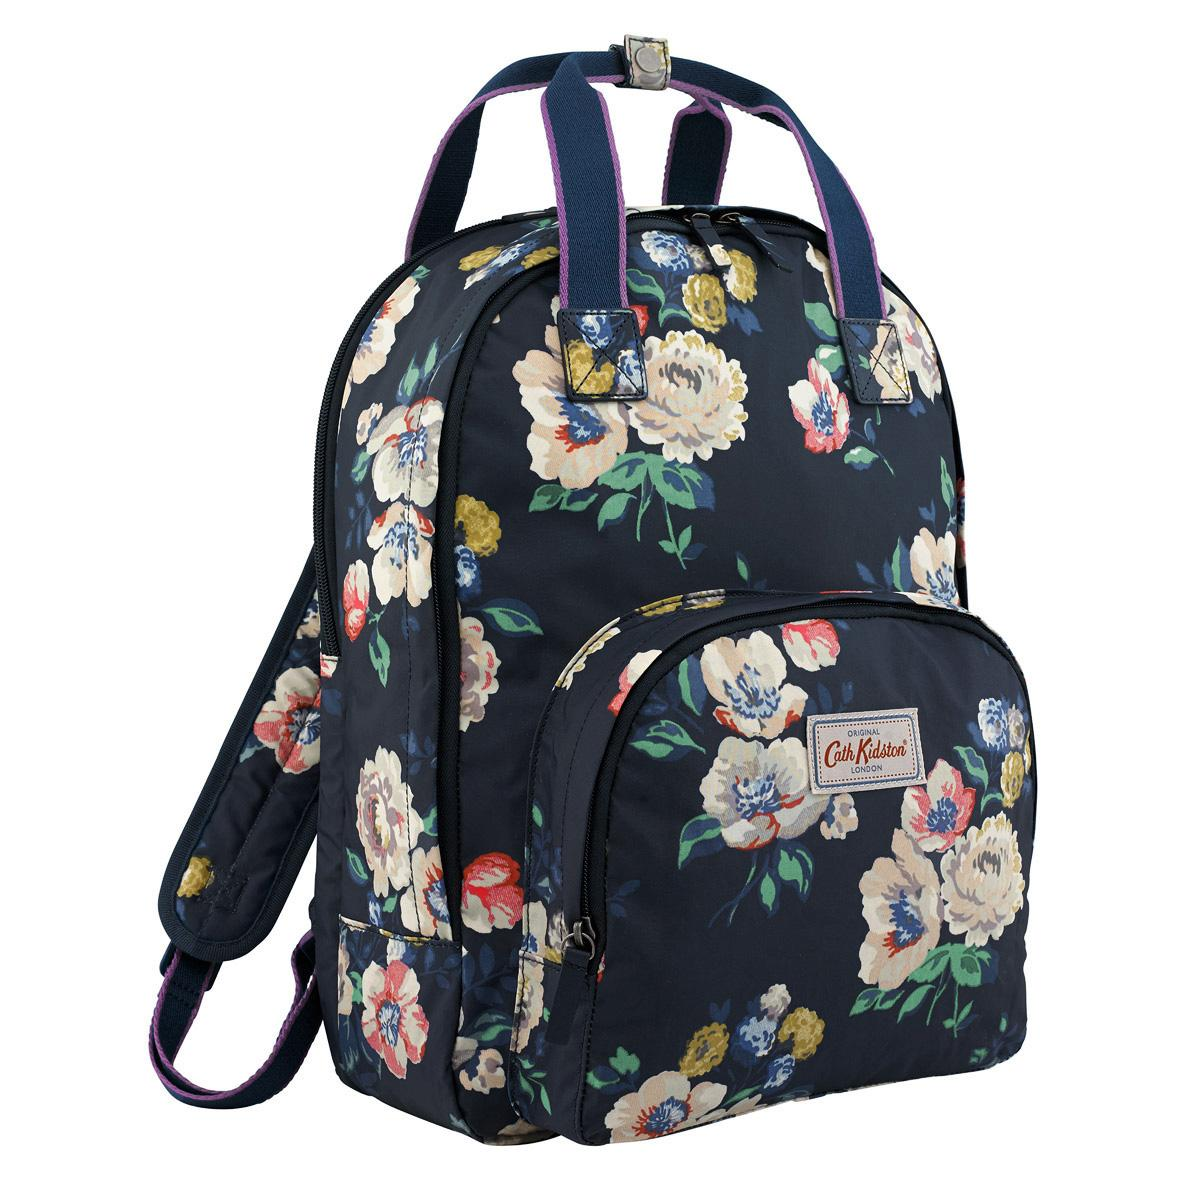 08af7178f559b Buy Brand New Collection of Backpack | Lazada.sg